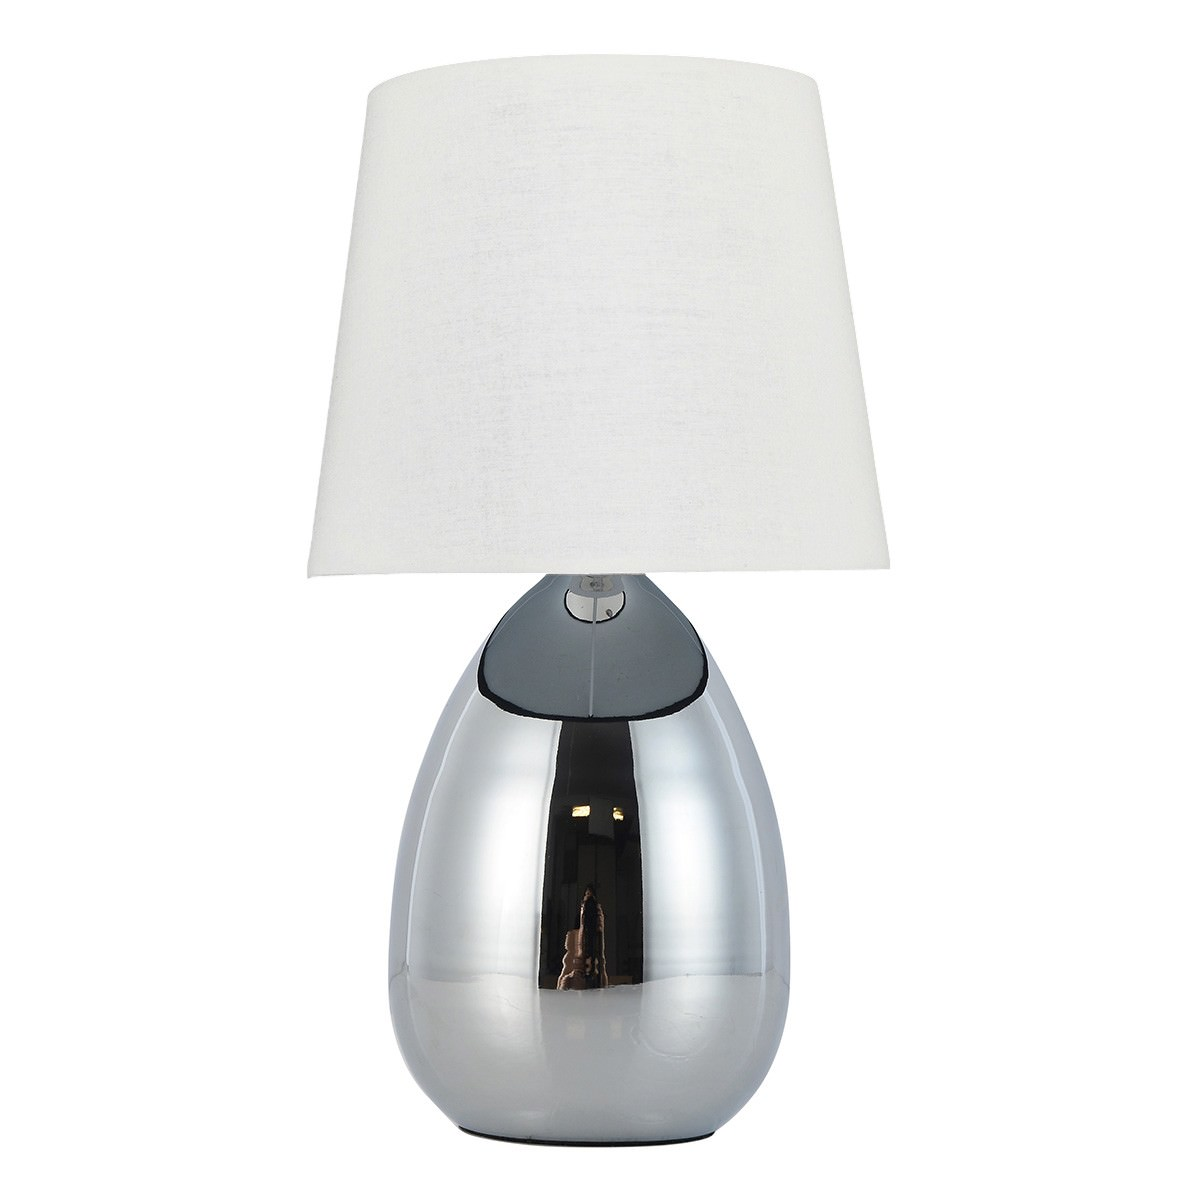 Libby Metal Base Touch Table Lamp, White / Chrome